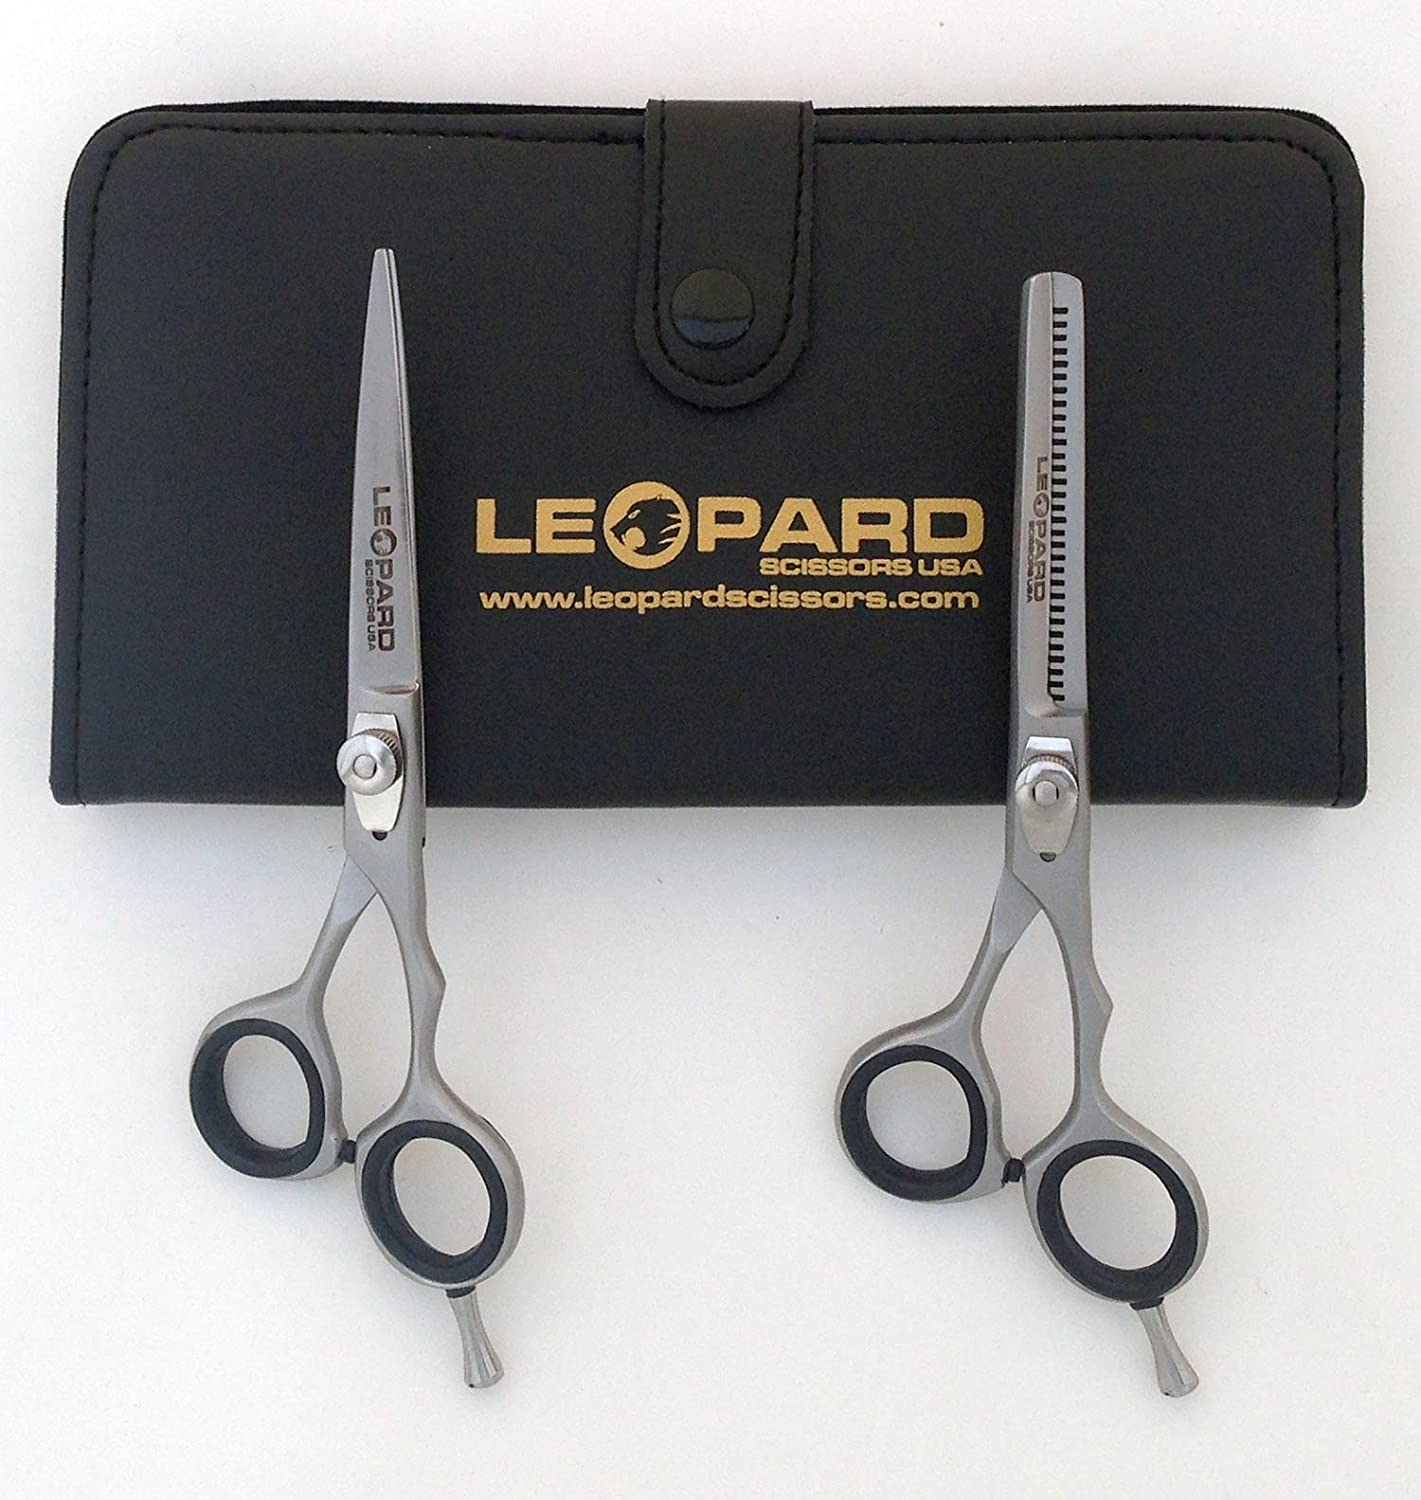 """Right Hand Shears Professional Hairdressing Scissors Hair Cutting Shears Barber Salon Styling Scissors 6.0"""" Japanese Steel with Free Case Black Color Leopard Shears Ls-225"""